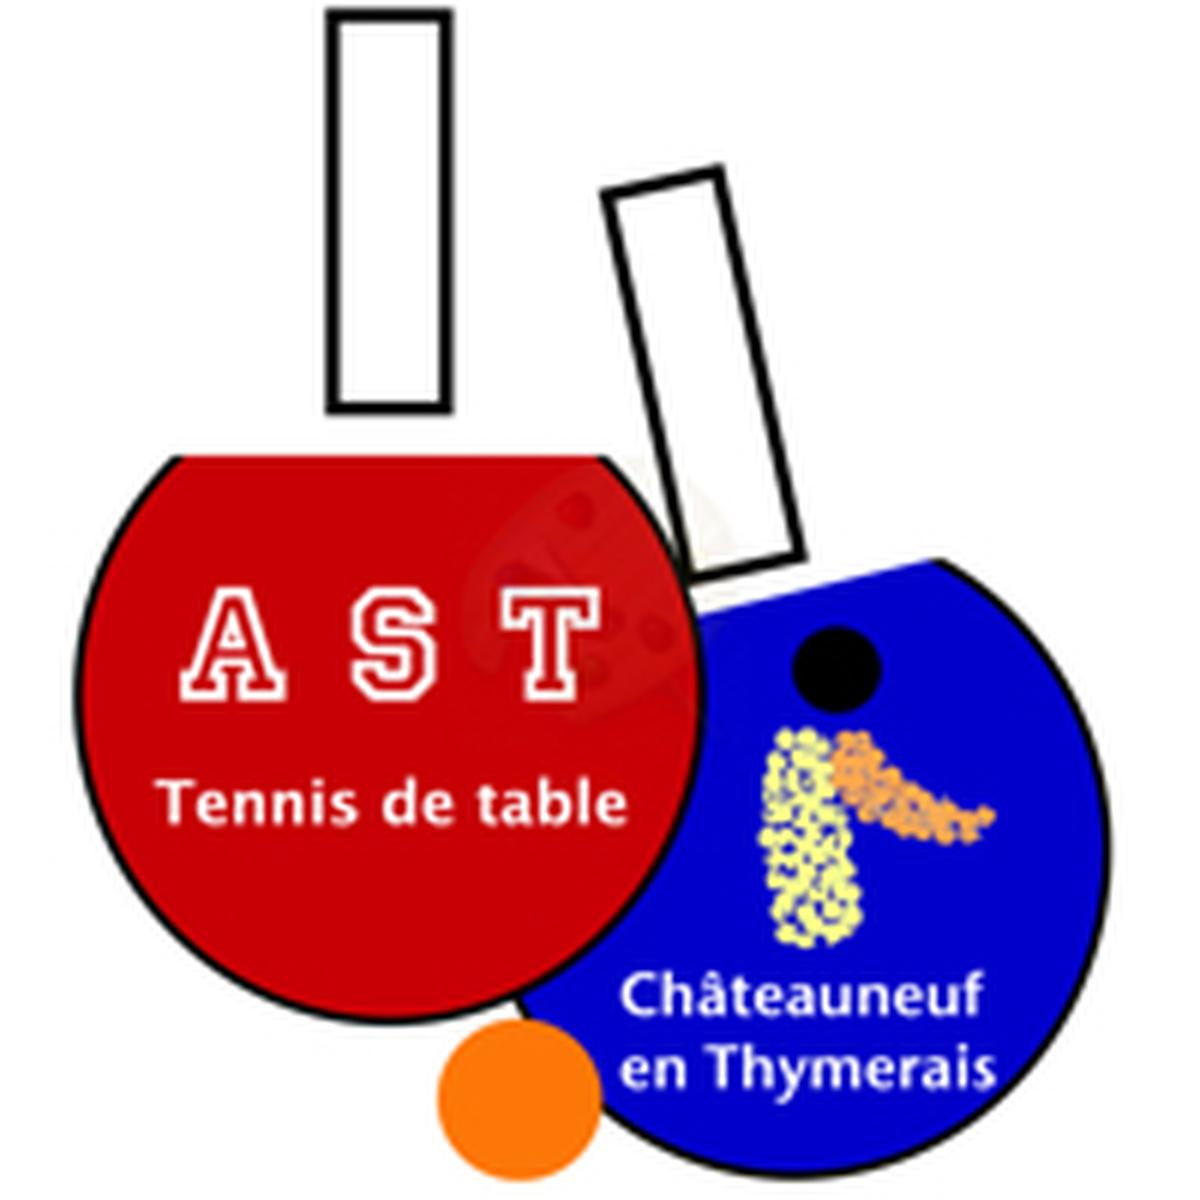 A.S.T Tennis de table - CHATEAUNEUF EN THYMERAIS